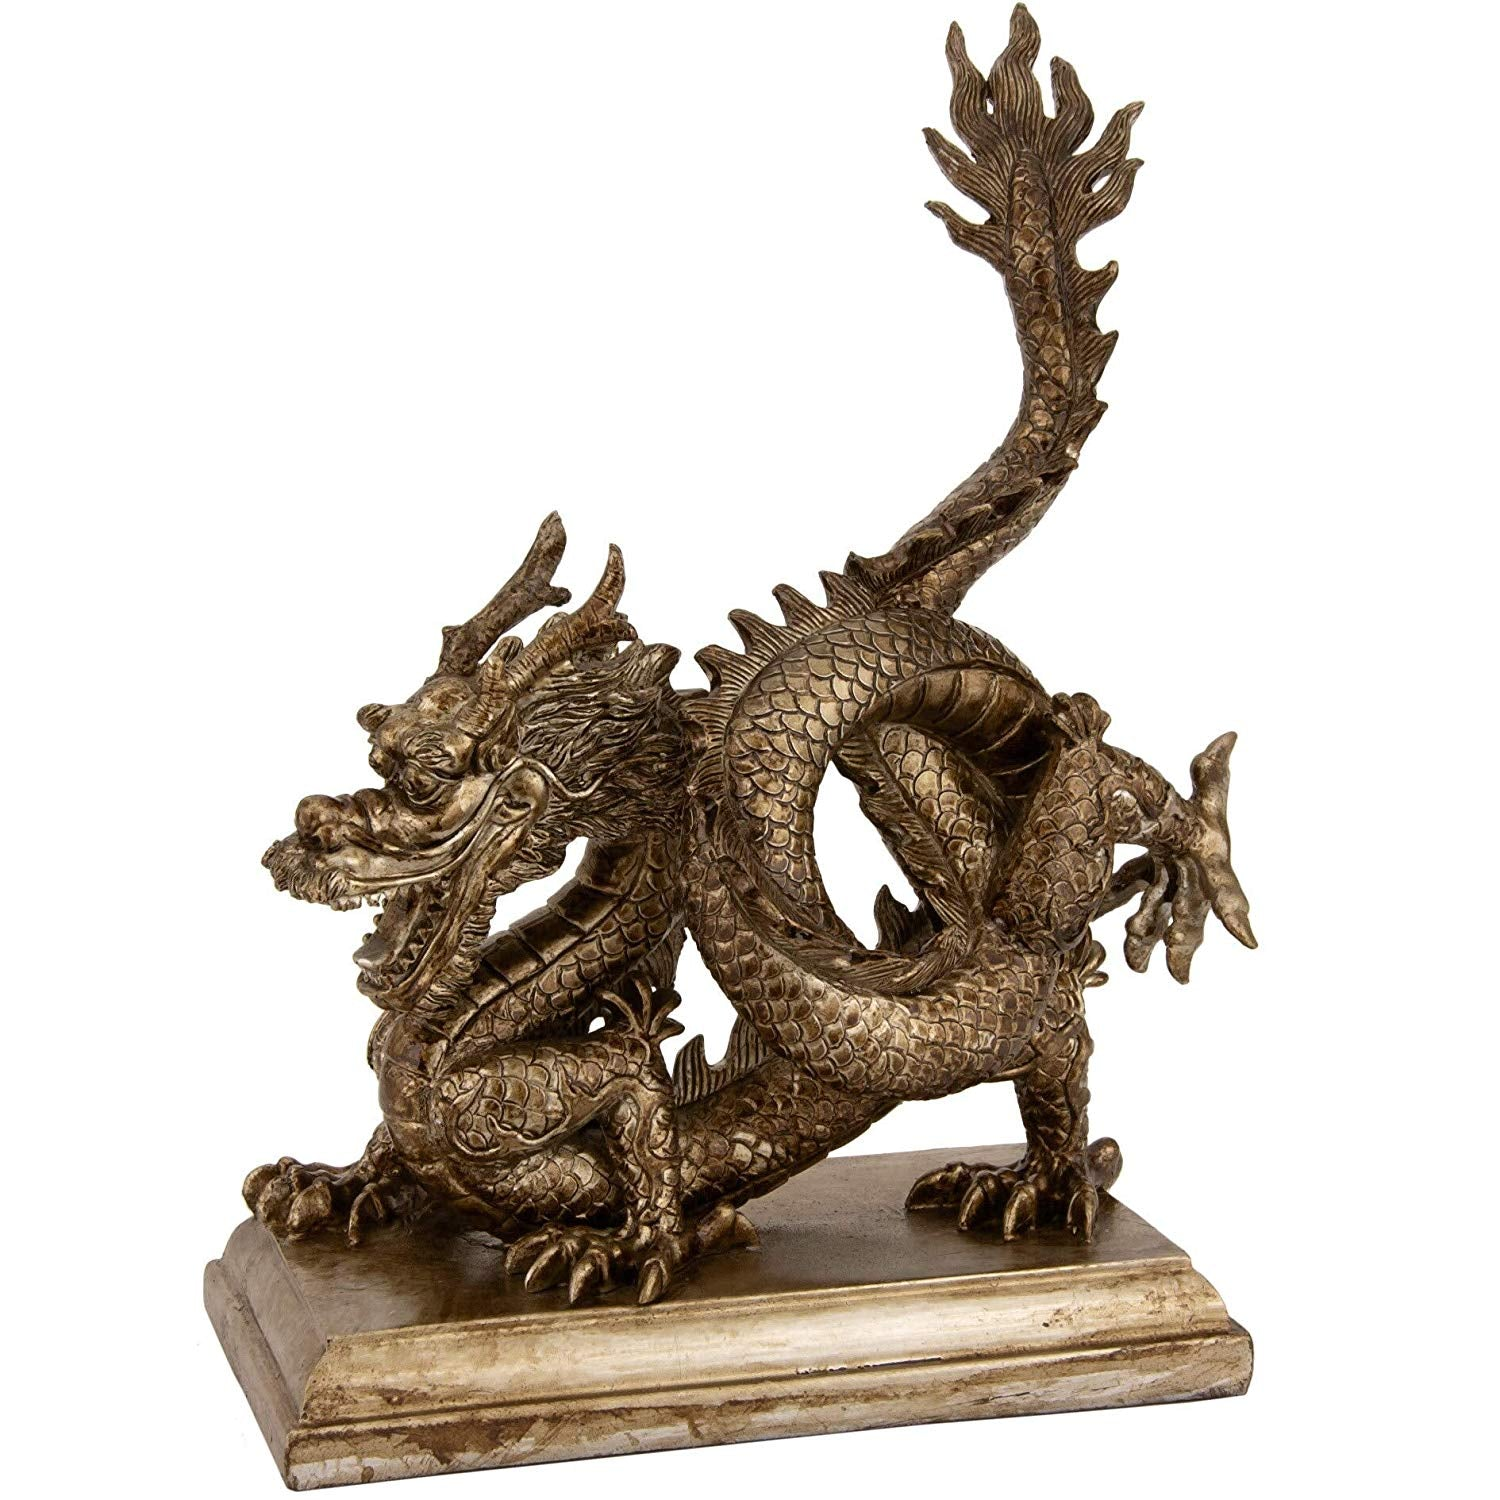 Breathing Chinese Dragon Statue Orient Figurine Asian Oriental Sculpture Wisdom Mythical China Art Metallic Resin 11 Inch H